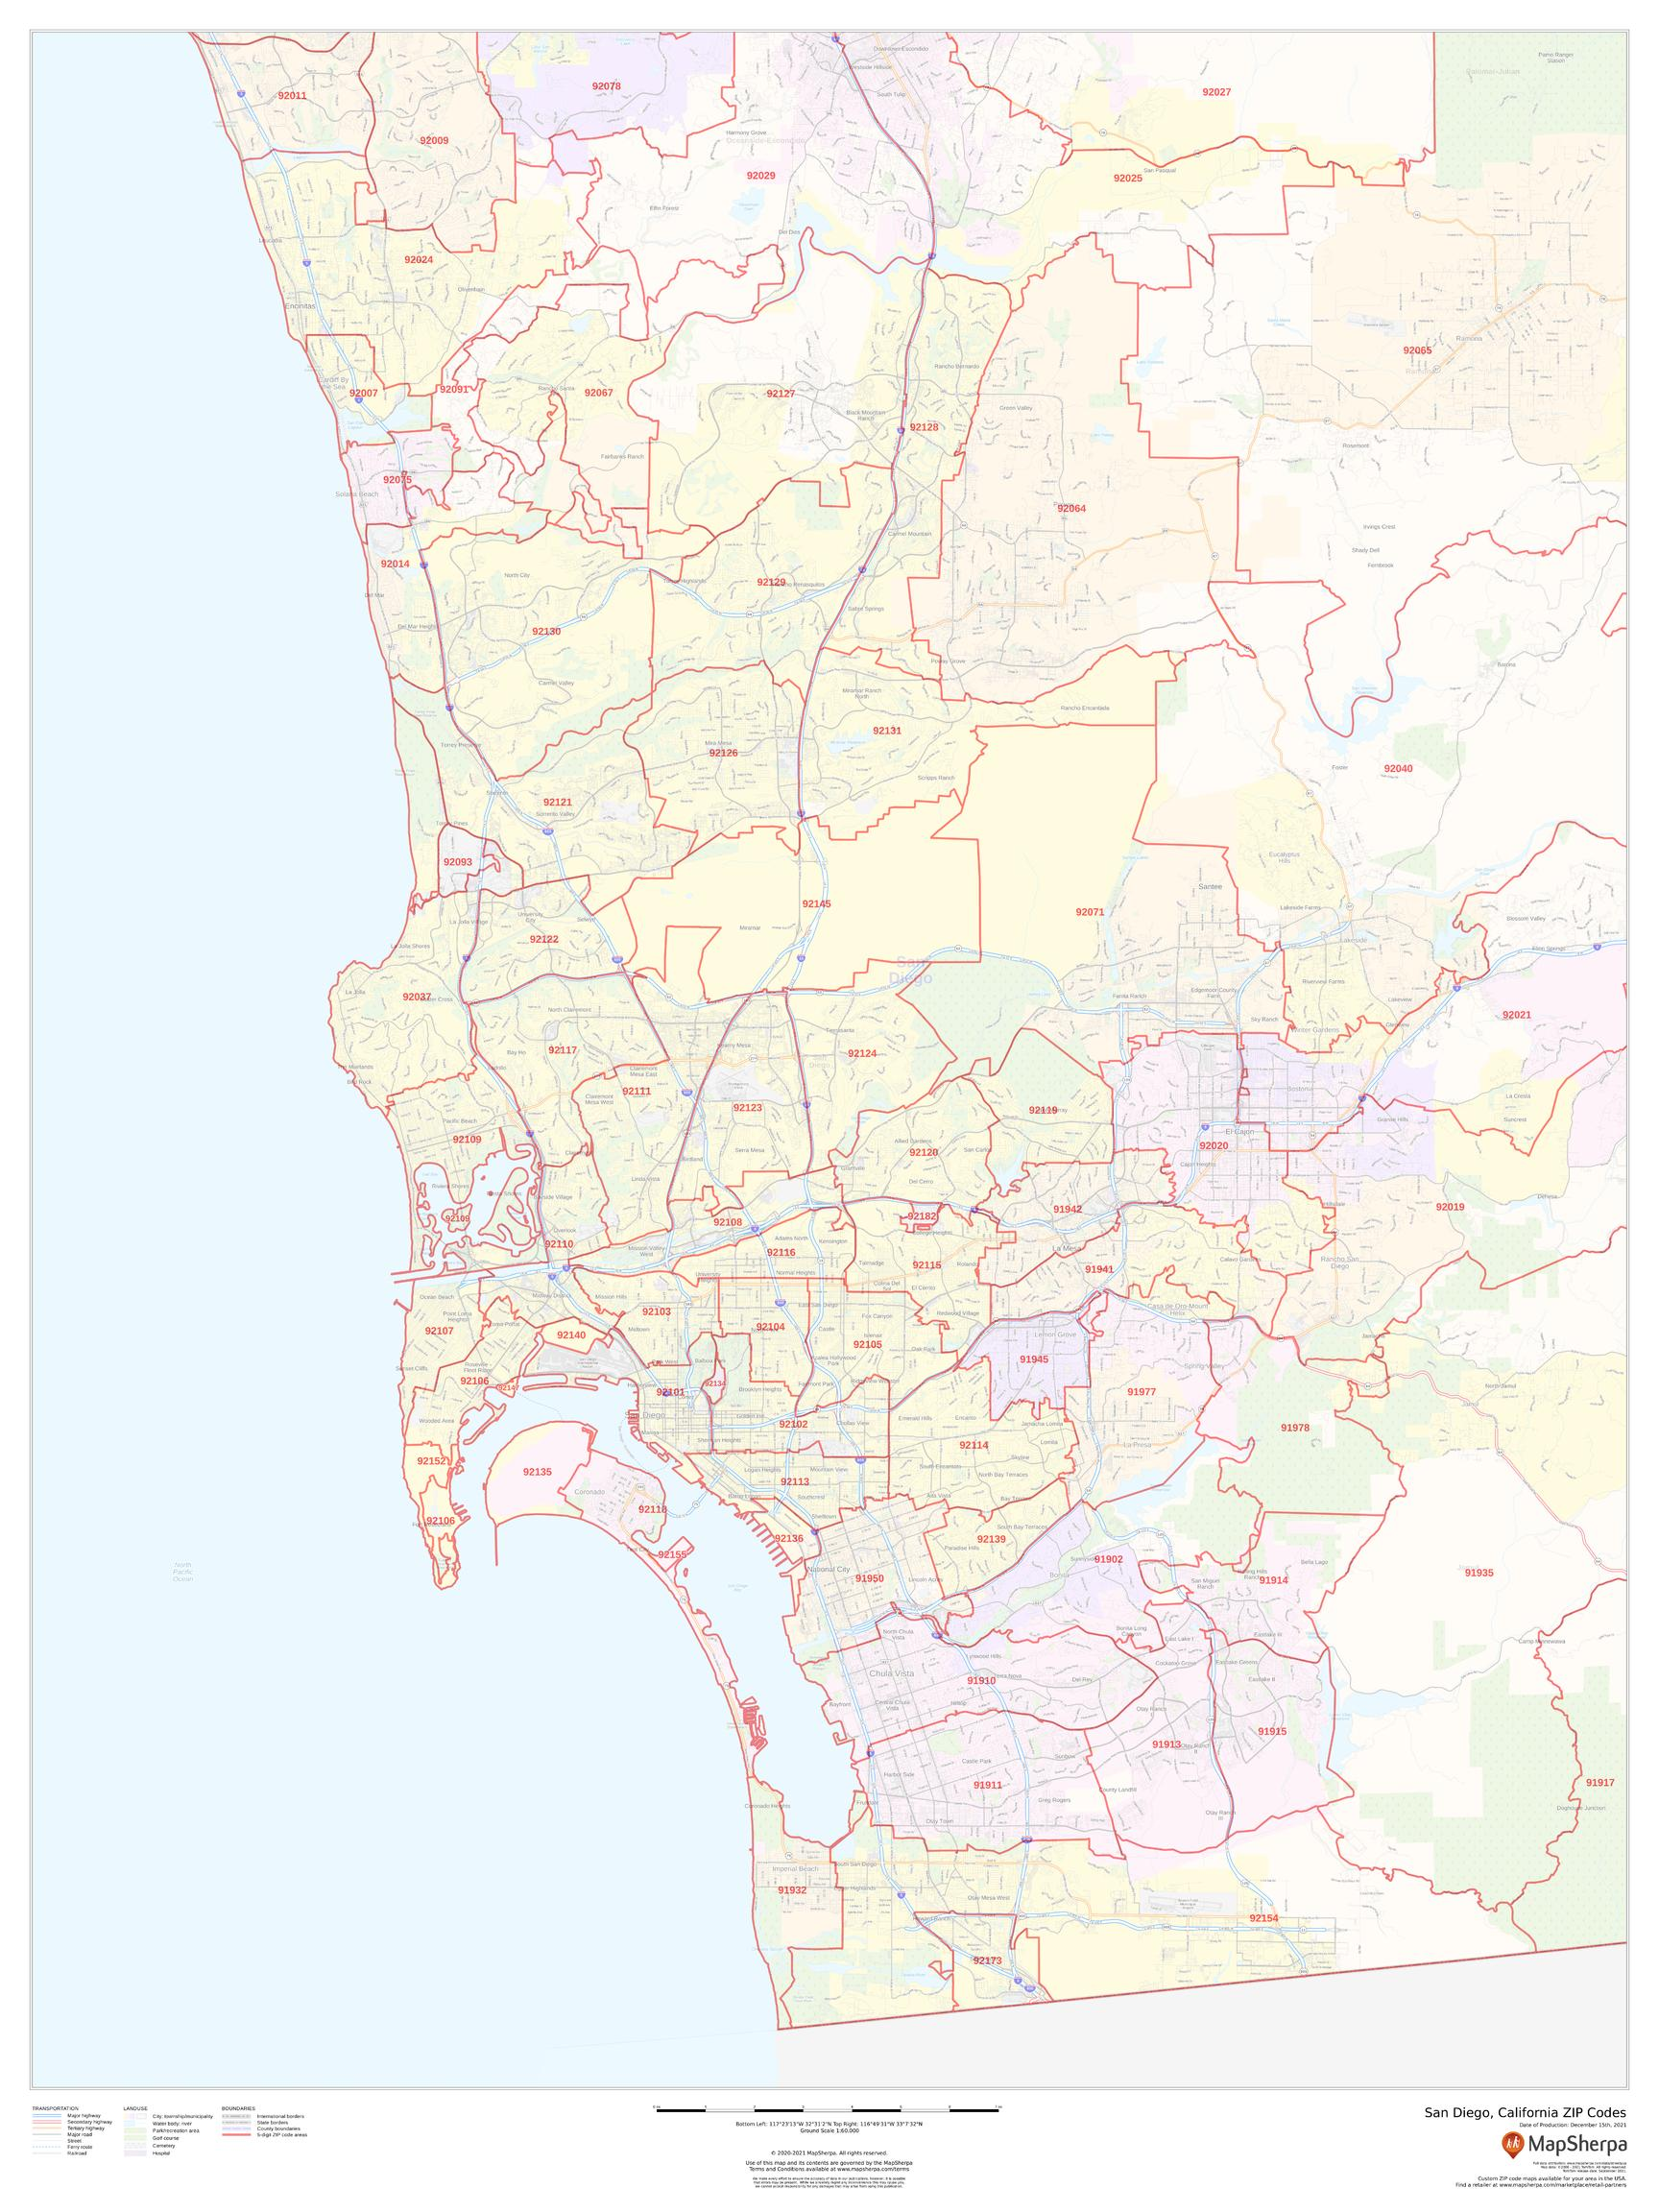 San Diego, California ZIP Codes